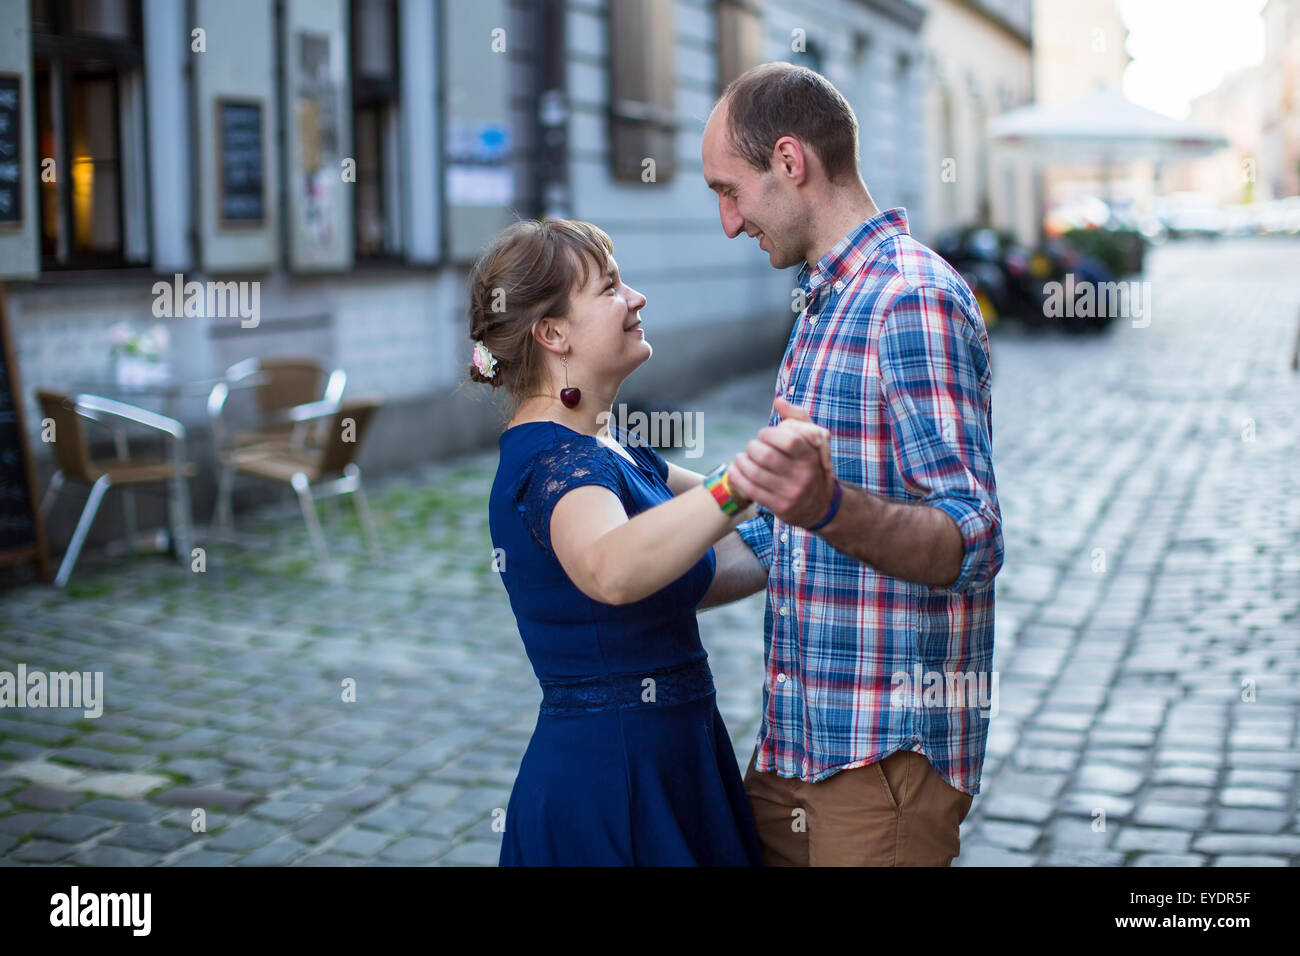 Young couple dancing on the street of the old town. Newlyweds on their honeymoon. - Stock Image